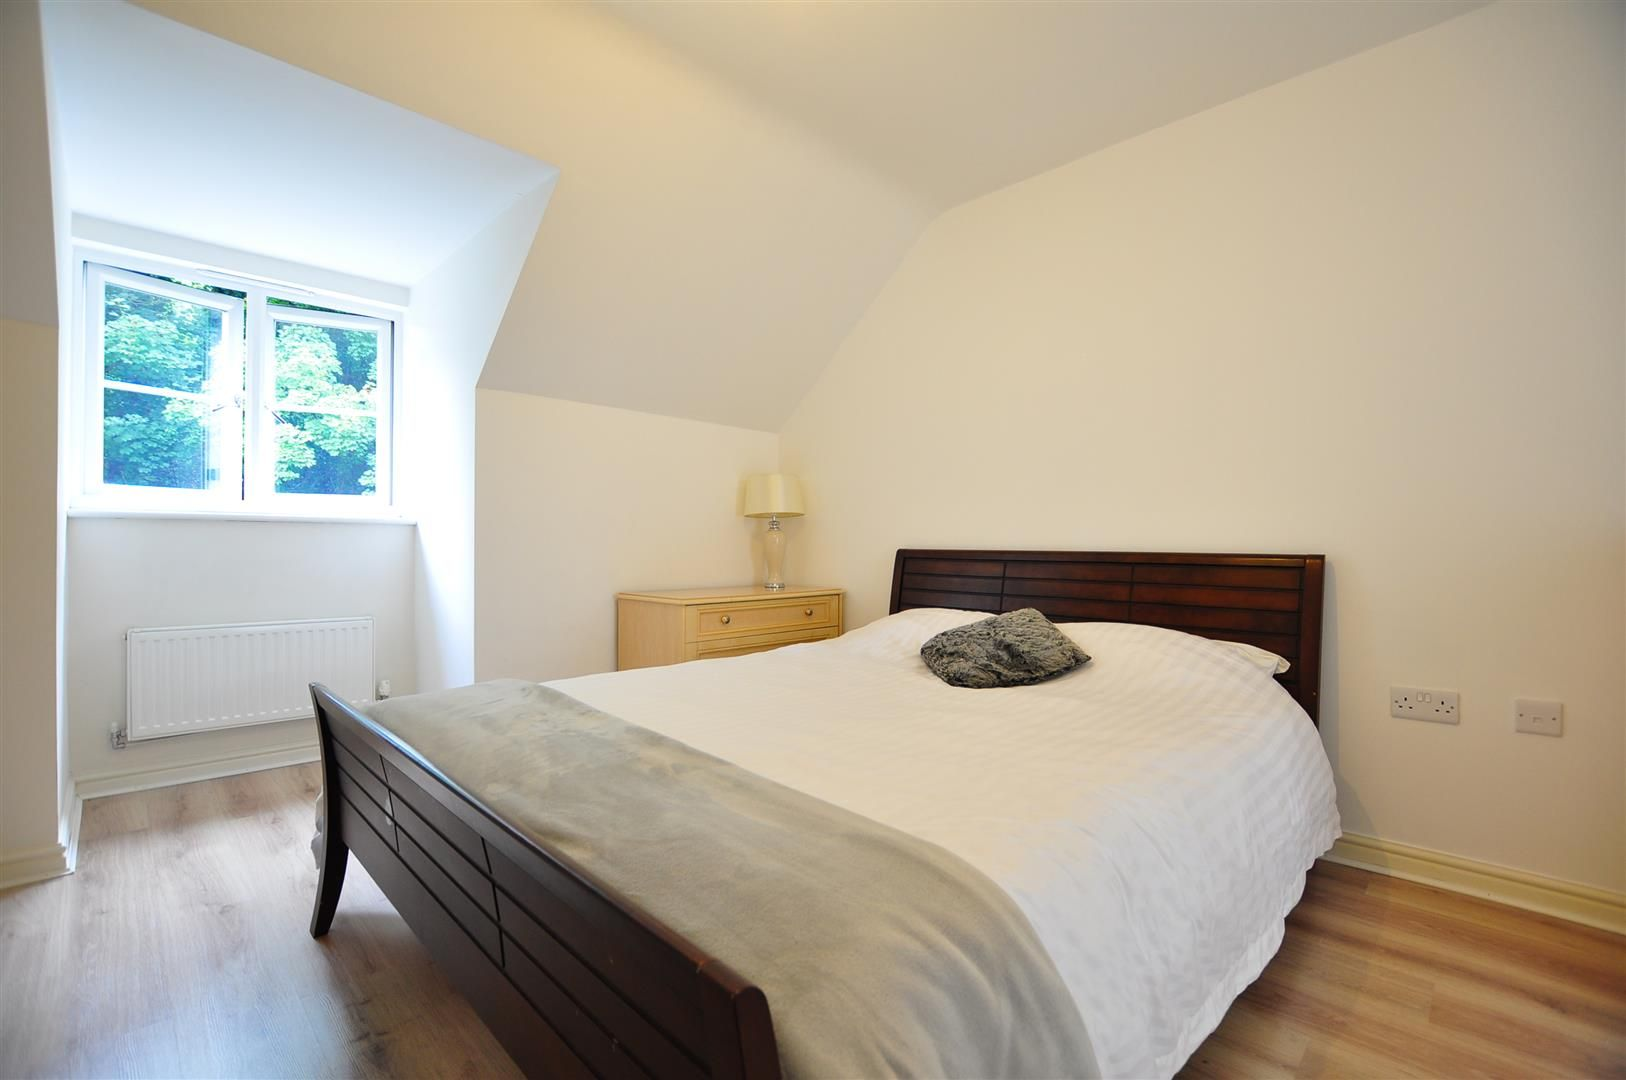 4 bed end-of-terrace for sale  - Property Image 7